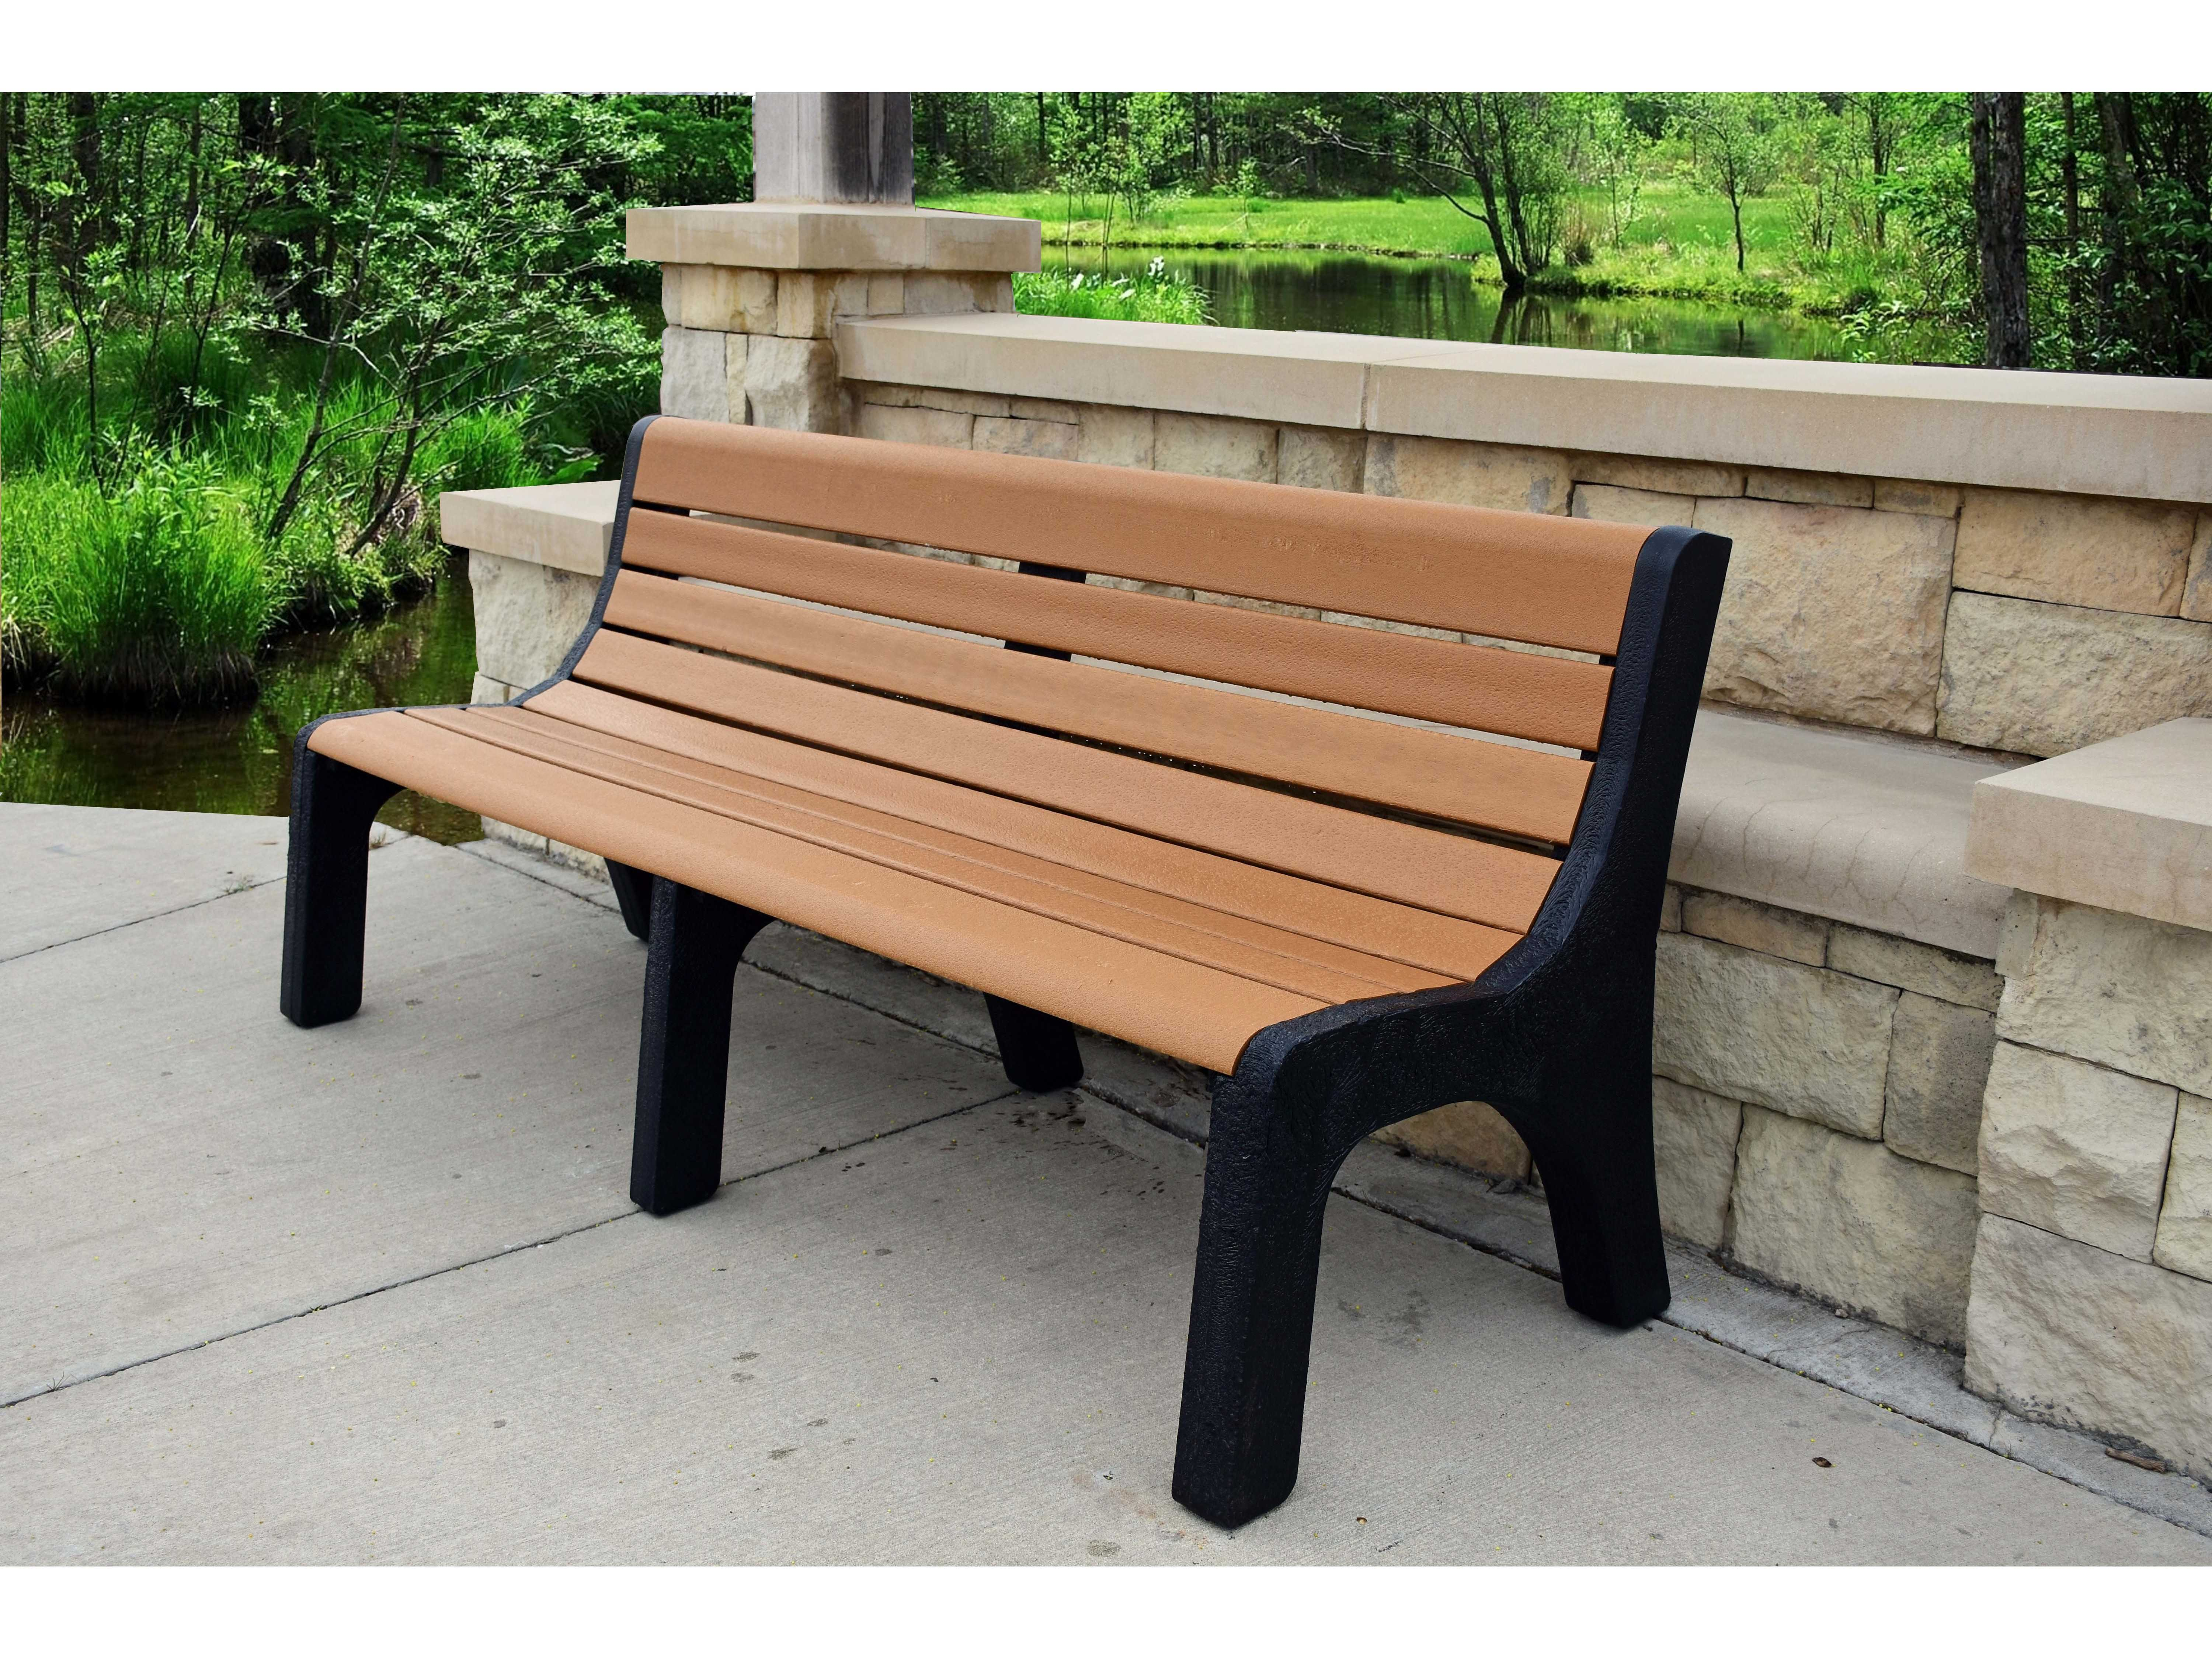 Frog Furnishings Newport Recycled Plastic Bench Pbnew